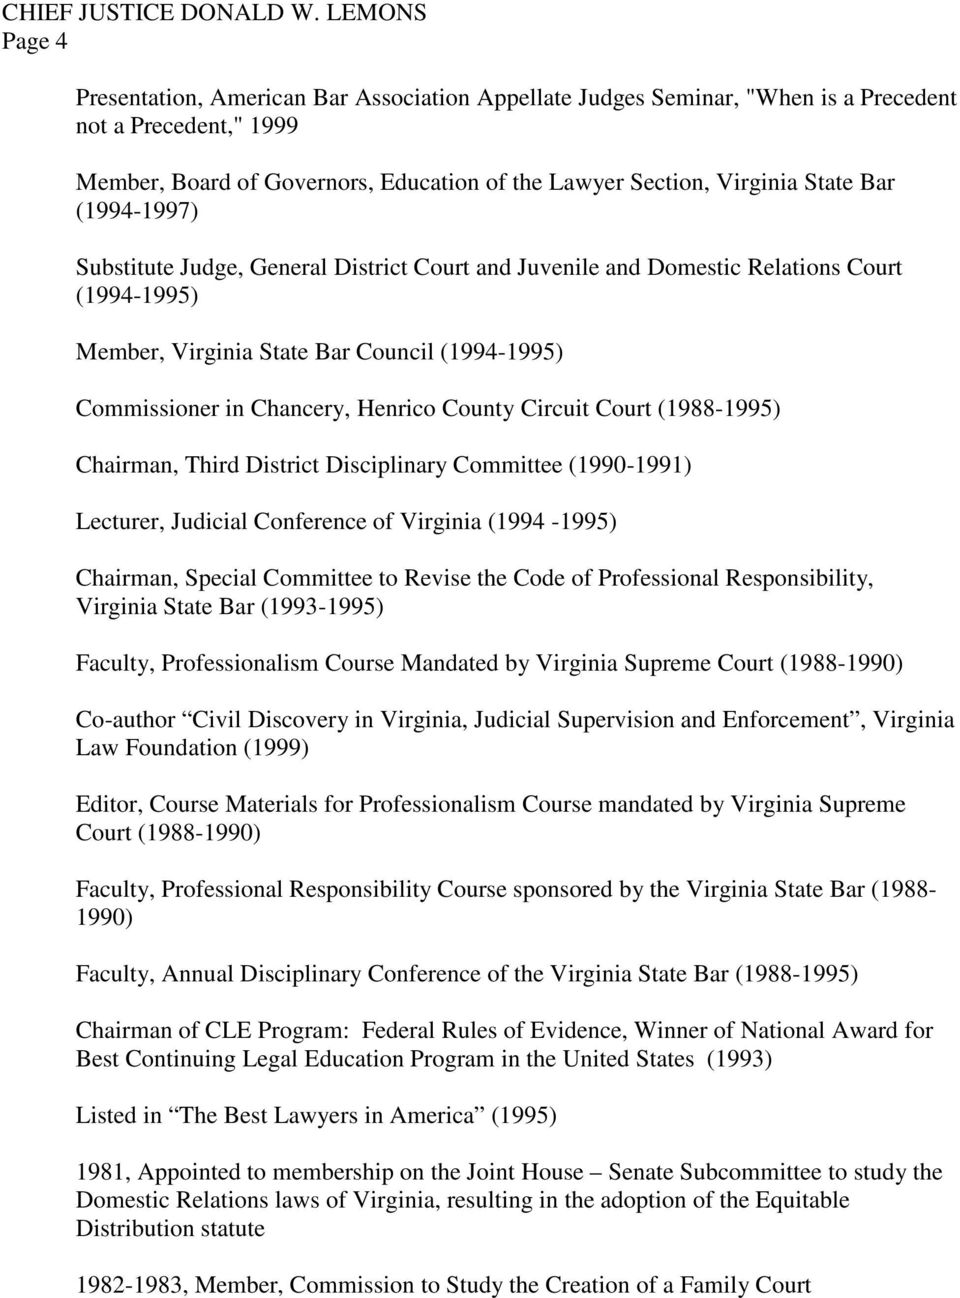 Circuit Court (1988-1995) Chairman, Third District Disciplinary Committee (1990-1991) Lecturer, Judicial Conference of Virginia (1994-1995) Chairman, Special Committee to Revise the Code of